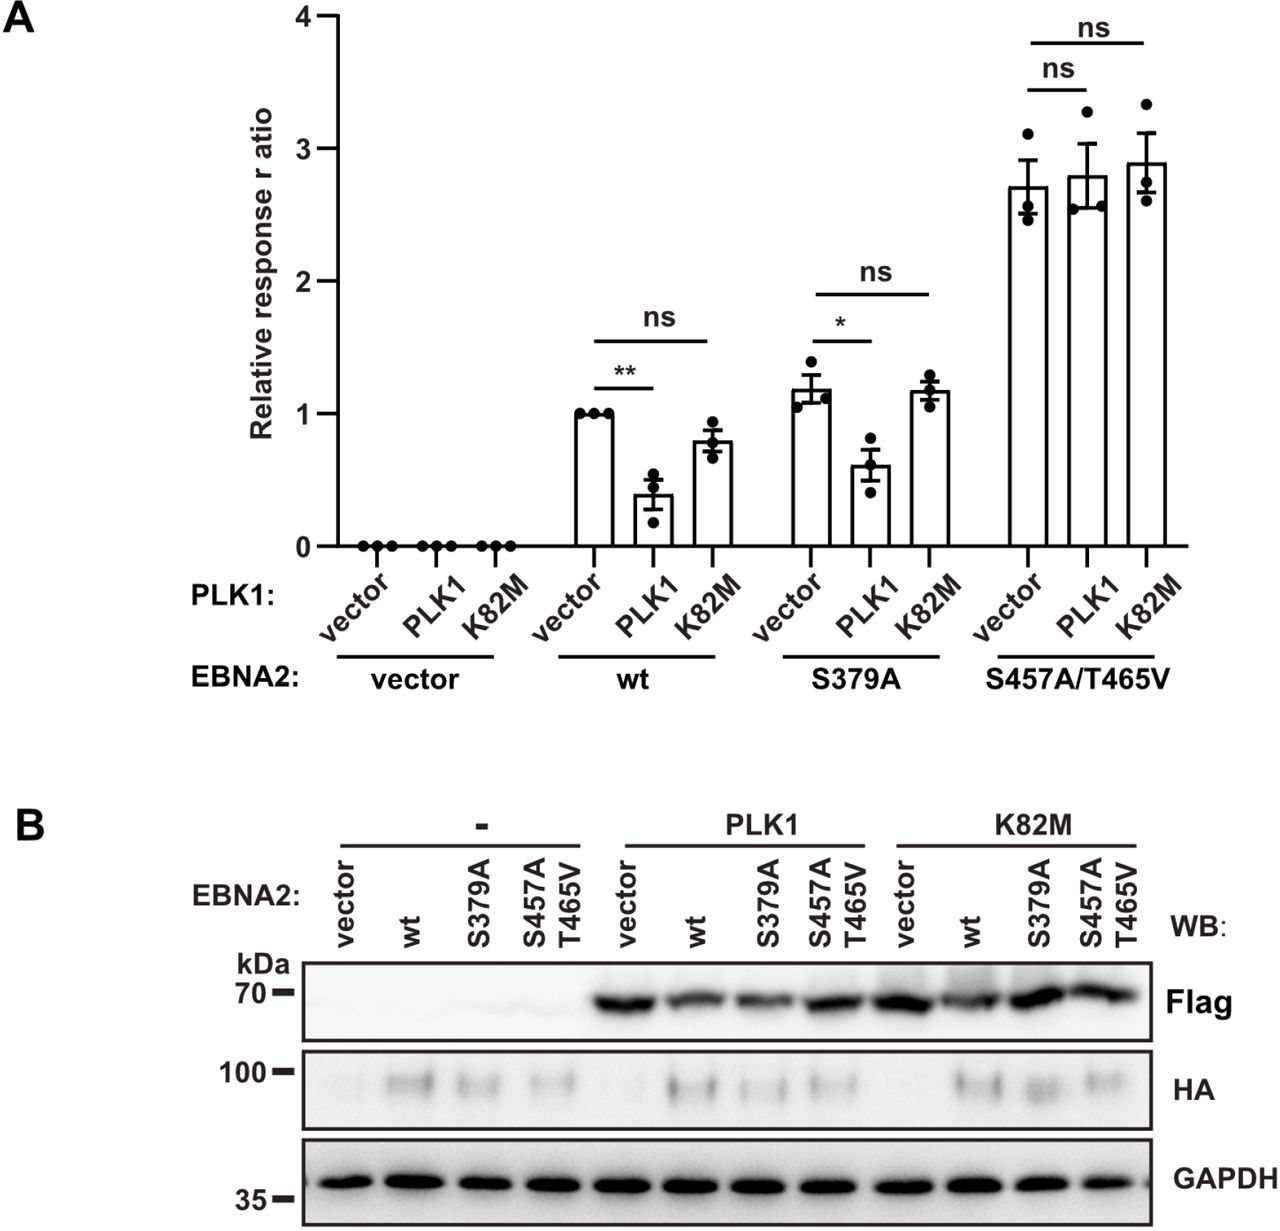 PLK1 phosphorylates the EBNA2 residue S457 and T465 within the C-terminal transactivation domain (A) Doxycycline (Dox) induction of EBNA2 in DG75 Dox HA-EBNA2 cells treated for 24 hours. Co-immunoprecipitates of HA-EBNA2 and endogenous PLK1 are visualized by Western blotting. (B) EBNA2/PLK1 co-precipitates were submitted to kinase reactions using [γ- 32 P] ATP in the absence (control) or presence of 50 ng recombinant active PLK1. (C) EBNA2 co-precipitates were submitted to kinase reactions in the absence (control) or the presence of the PLK1 inhibitor Volasertib (40 nM). (D) EBNA2 candidate phosphorylation mutants were expressed in DG75 B cells and tested for PLK1 binding by co-immunoprecipitations followed by Western blotting. (E) Immunoprecipitates were submitted to kinase reactions as in B, but samples were treated with Volasertib (40 nM) (+) or treated with solvent only (-). (F) GST EBNA2 fragment 246-487 wt and mutant S457A/T465V were treated with recombinant active PLK1 (+) in the presence of [γ- 32 P] ATP in vitro or left untreated (-). CRS, an artificial PLK1 test substrate ( Yuan et al , 2002 ), was used as a positive control. (G) Schematic presentation of EBNA2 phosphorylation sites by CDK1 and PLK1. (H) HA-tagged EBNA2 candidate phosphorylation mutants were expressed in DG75 B cells and tested for activation of an EBNA2/CBF1 responsive promoter reporter luciferase plasmid. Activation of the reporter gene is shown as relative response ratio normalized to Renilla luciferase activity and shown relative to wt activity. (I) GST-pull down assay using GST-EBNA2 446-474 as a bait to purify cellular proteins from DG75 cells followed by Western blotting and quantification of signals obtained by GST and p300 specific antibodies. Relative binding affinities (rel. p300 bindg.) are normalized to the wt signal.